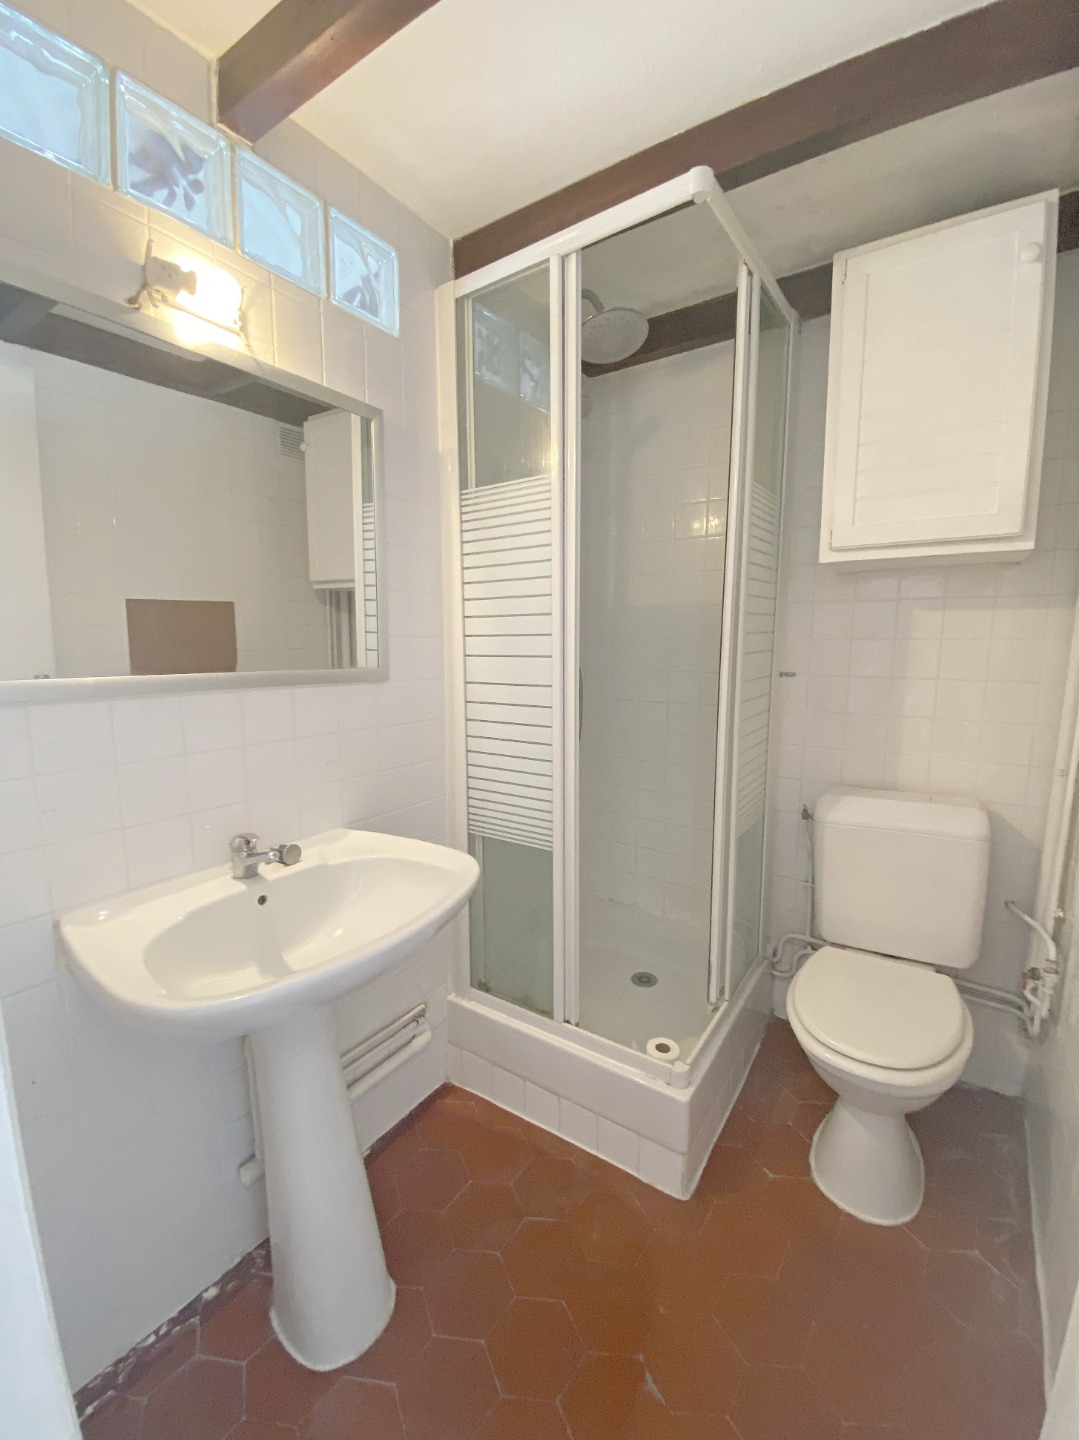 Montmartre, Abbesses, Beautiful studio in good condition in 4th and last floor, ceiling beams, quiet, on unobscured courtyard without opposite! 9